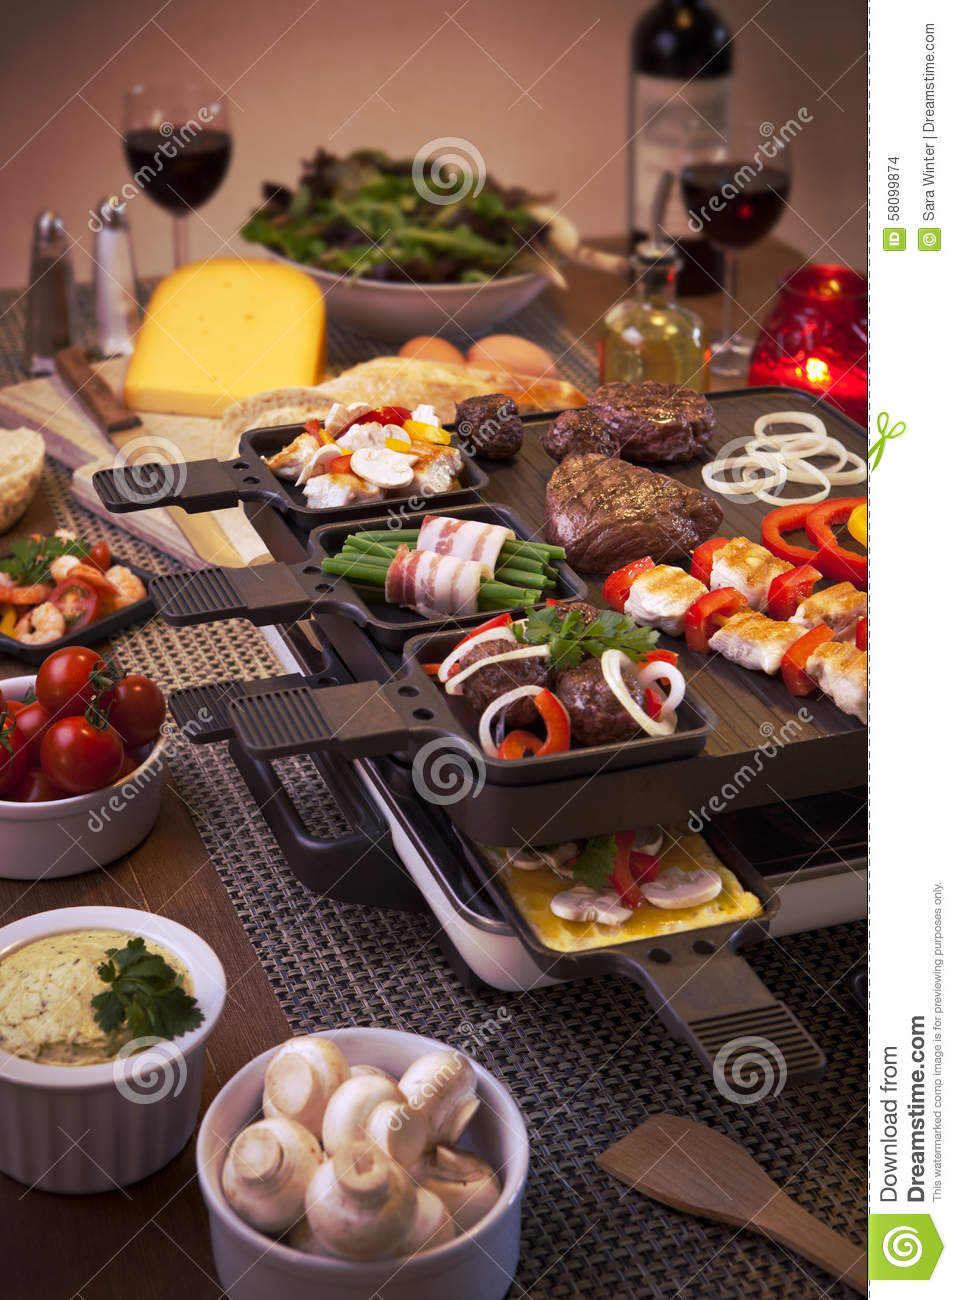 Le Gril De Table De Raclette Ou Les N Erlandais Gourmetten Photo Stock Image 58099874